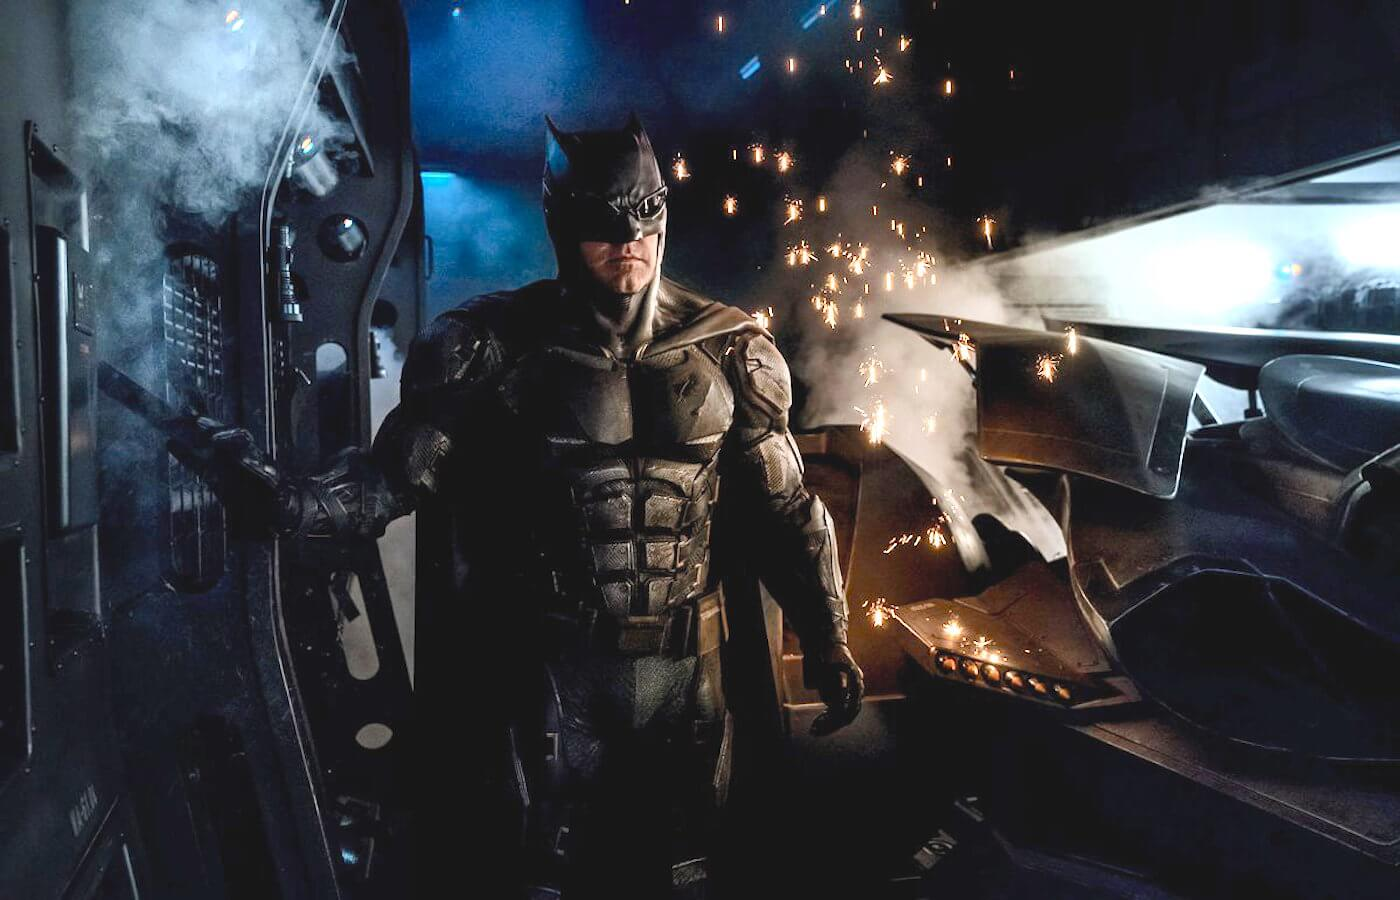 Justice league batman batsuit